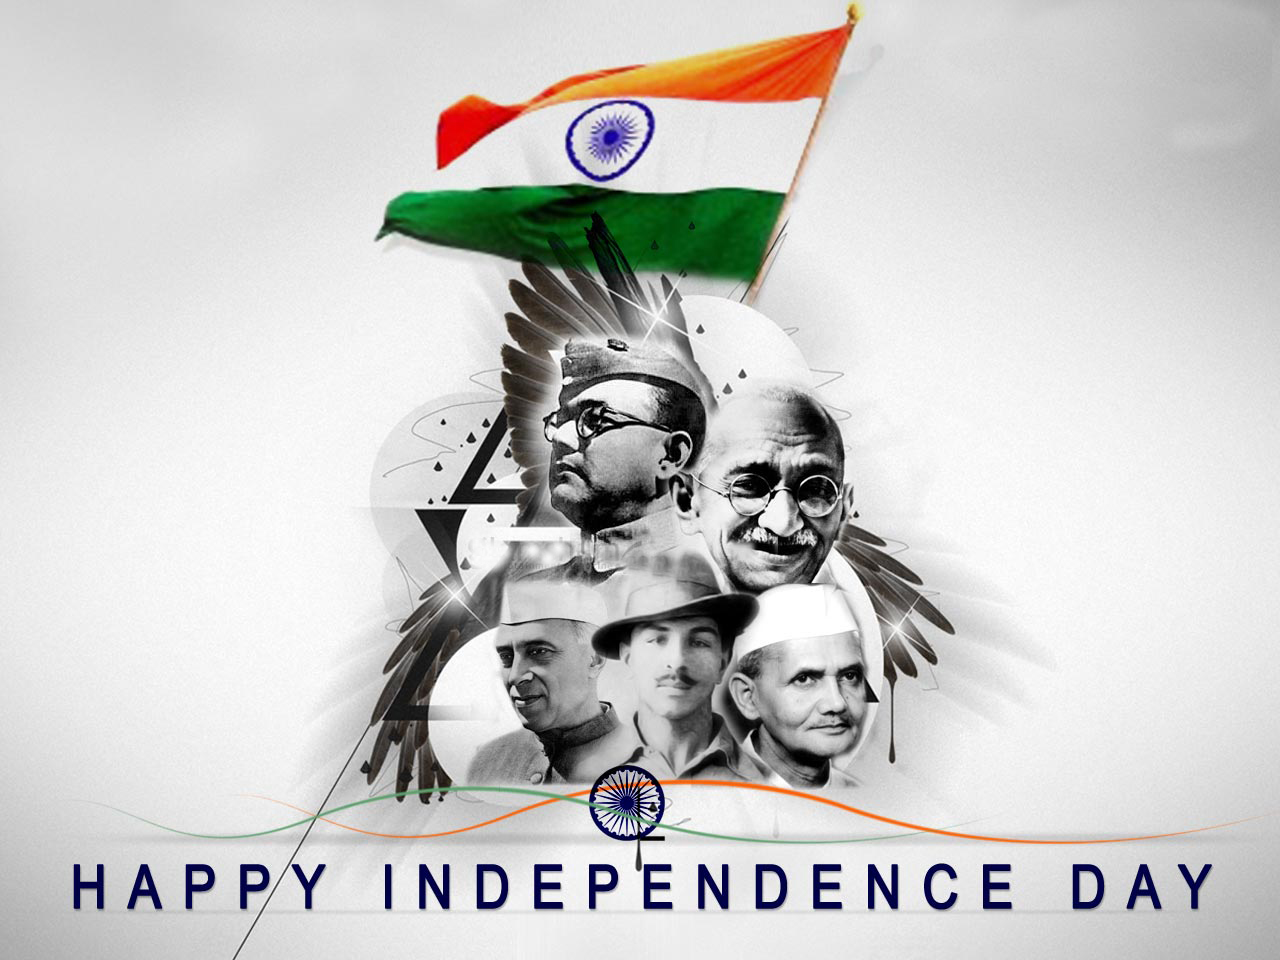 download Happy Independence Day Freedom Fighters Wallpaper 1280x960